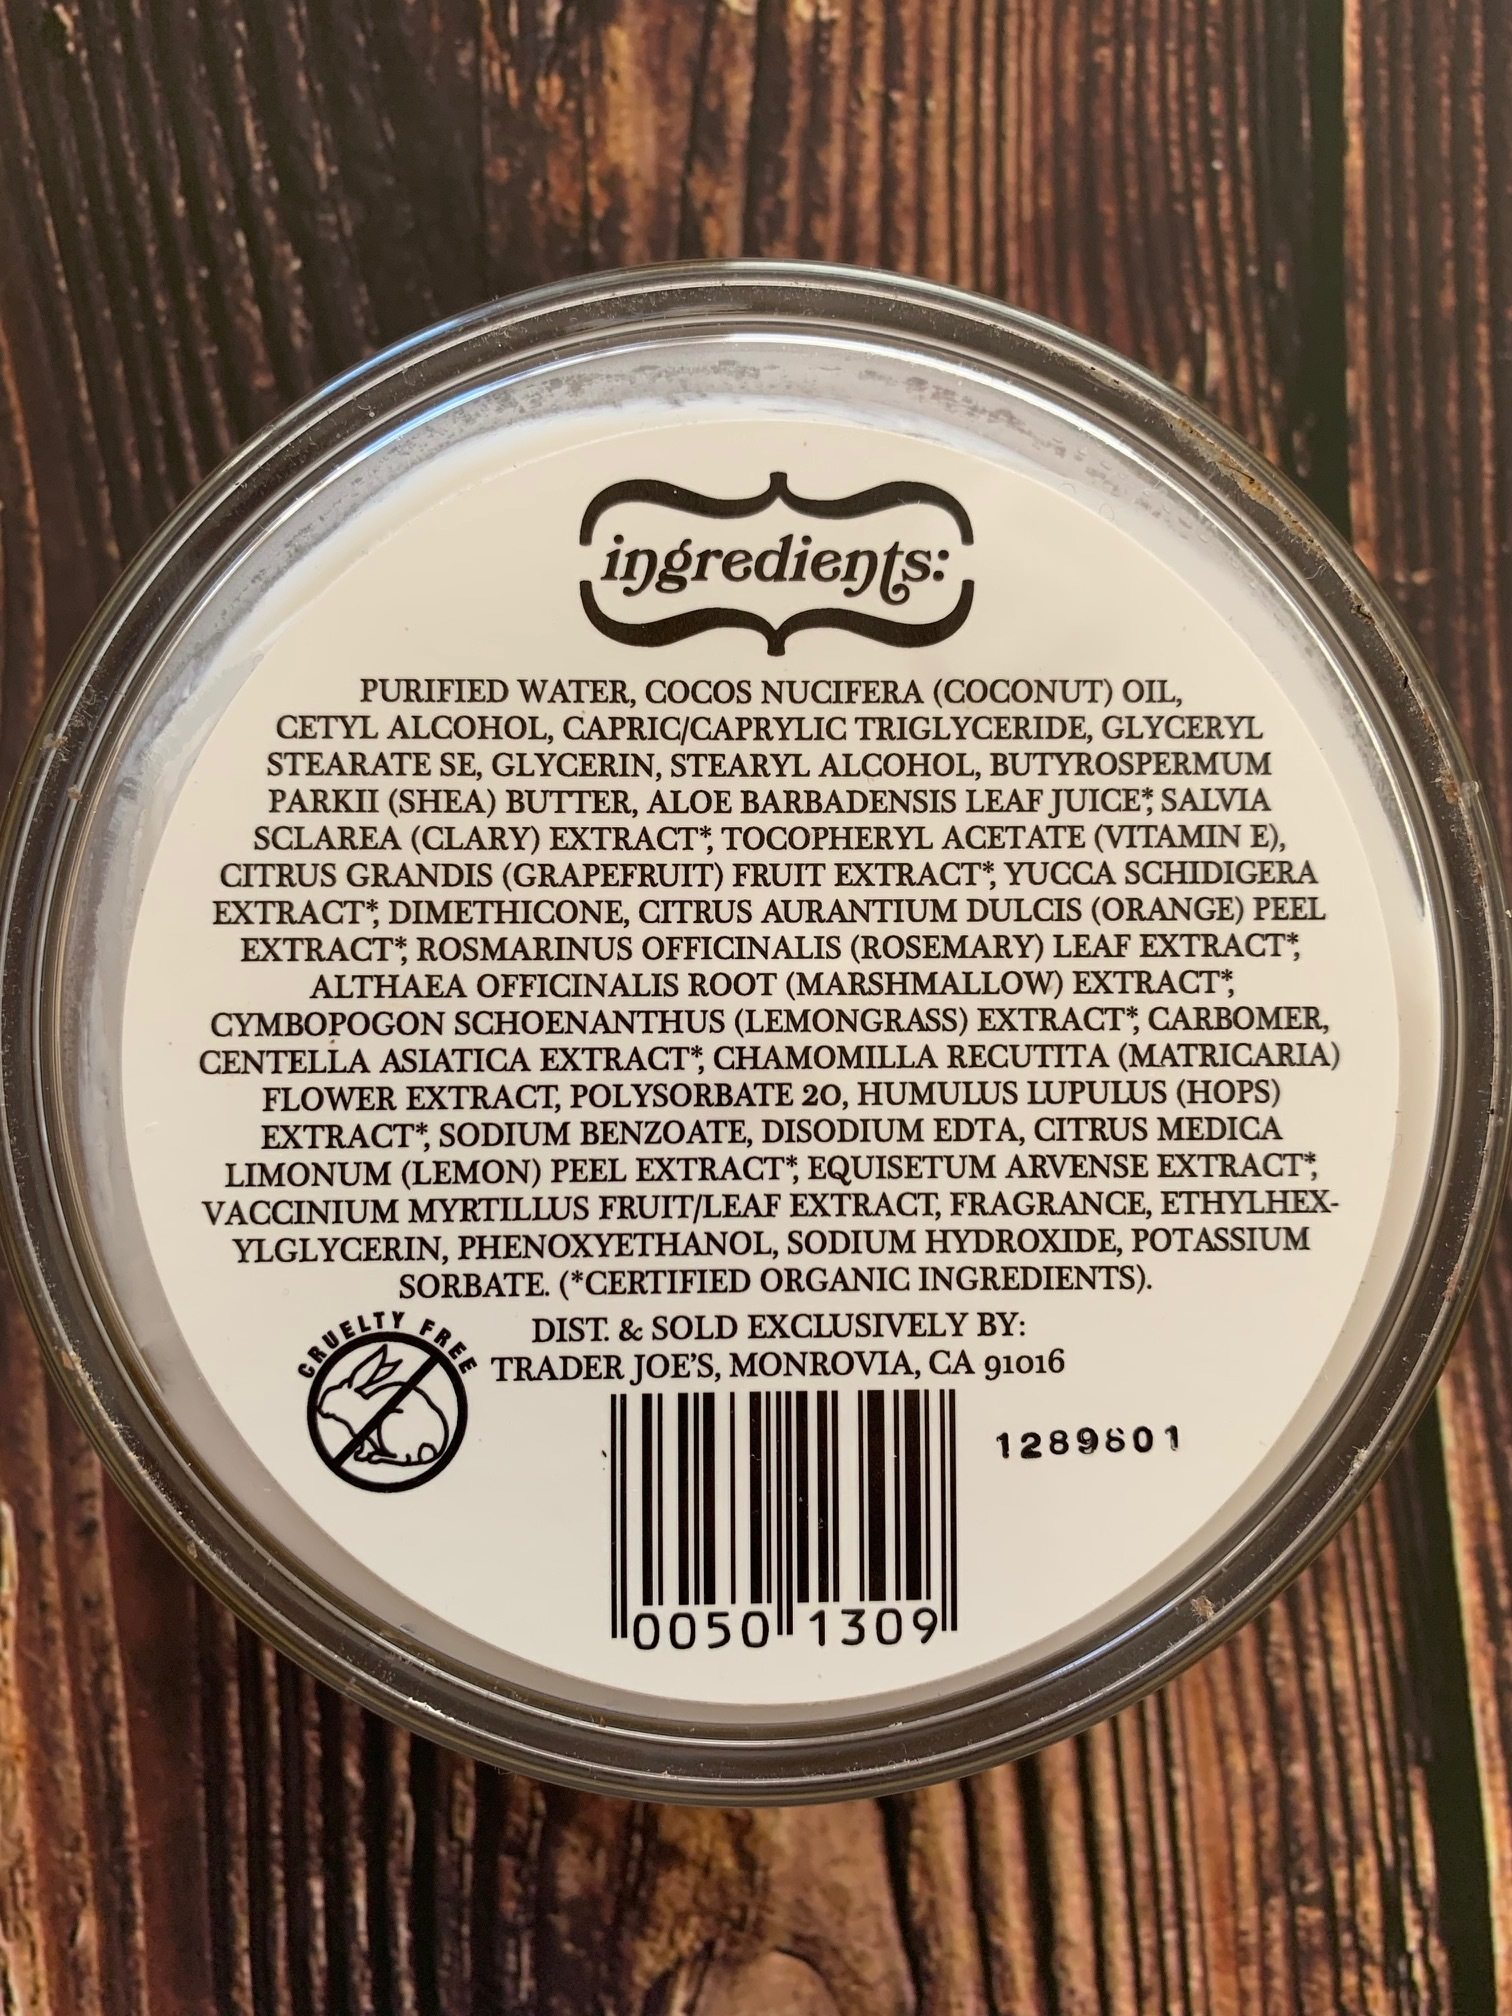 No parabens from what I can decipher on the ingredients label and it's cruelty free.